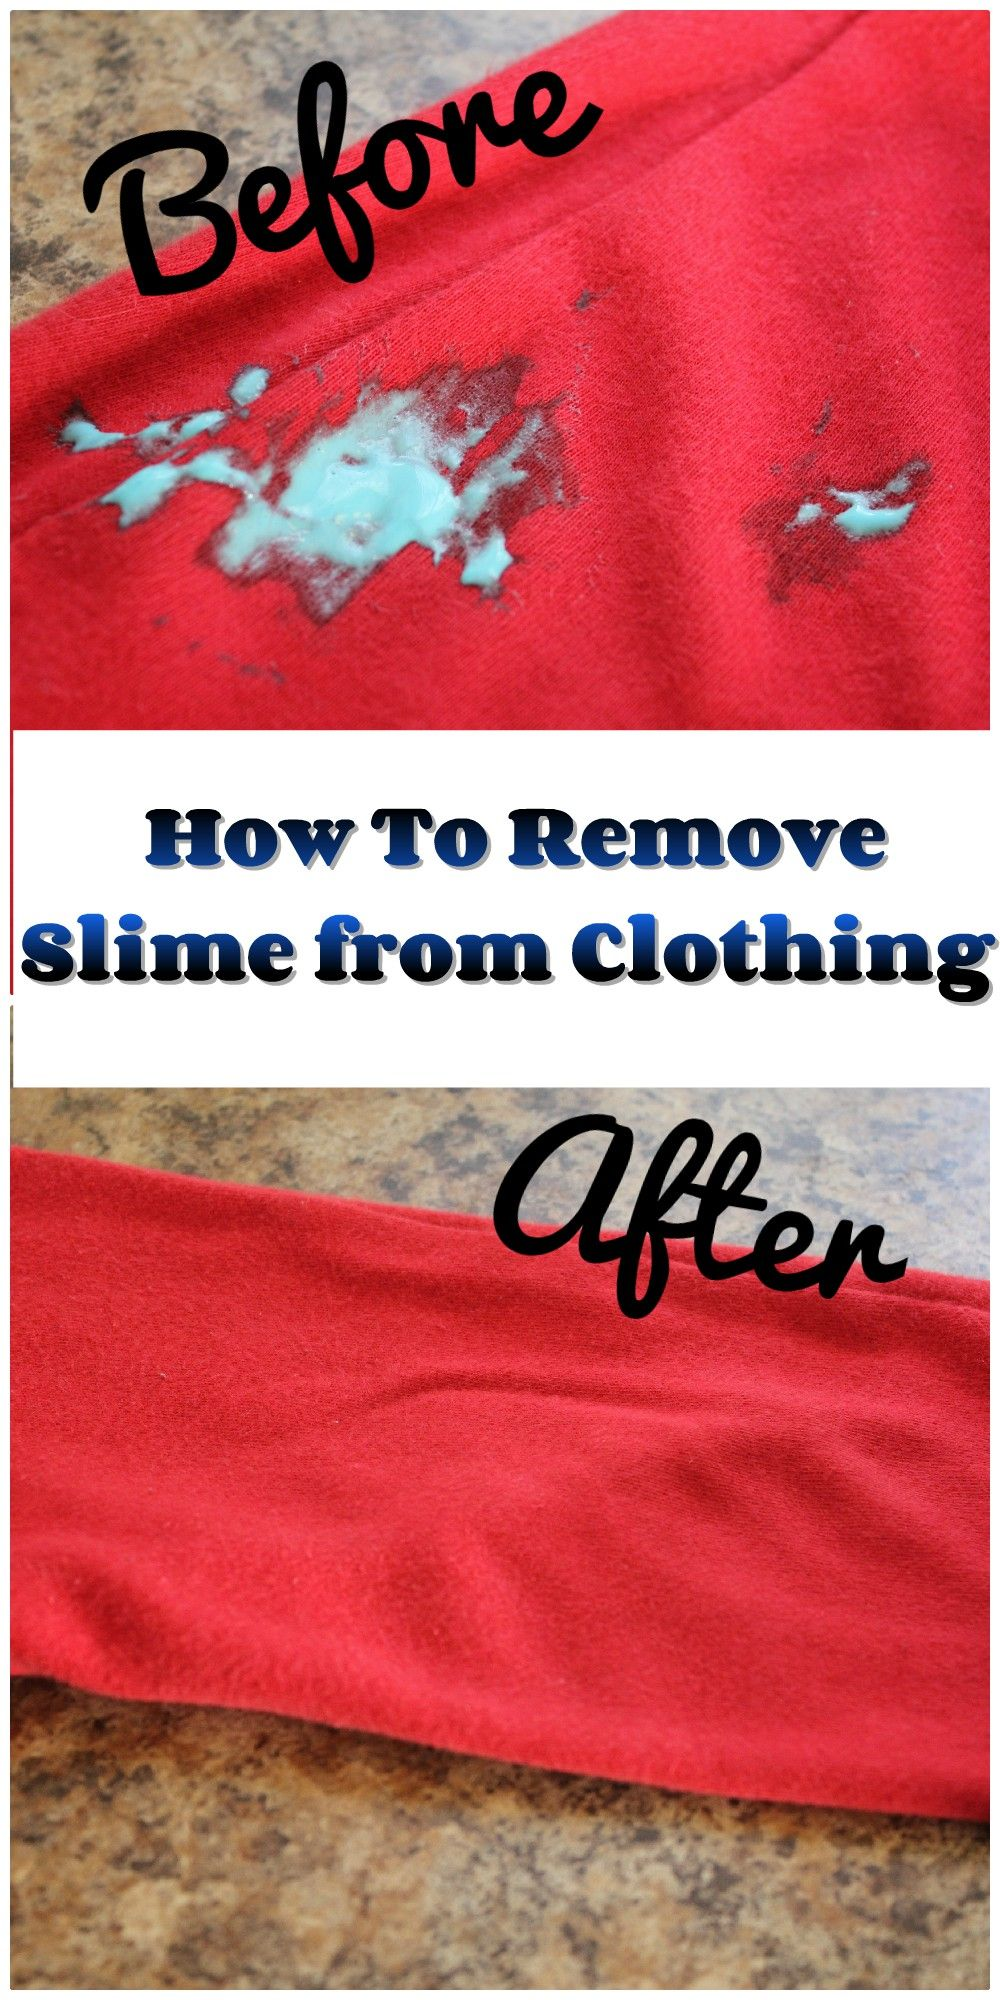 How To Remove Slime From Clothes The Fast And Easy Way Slime